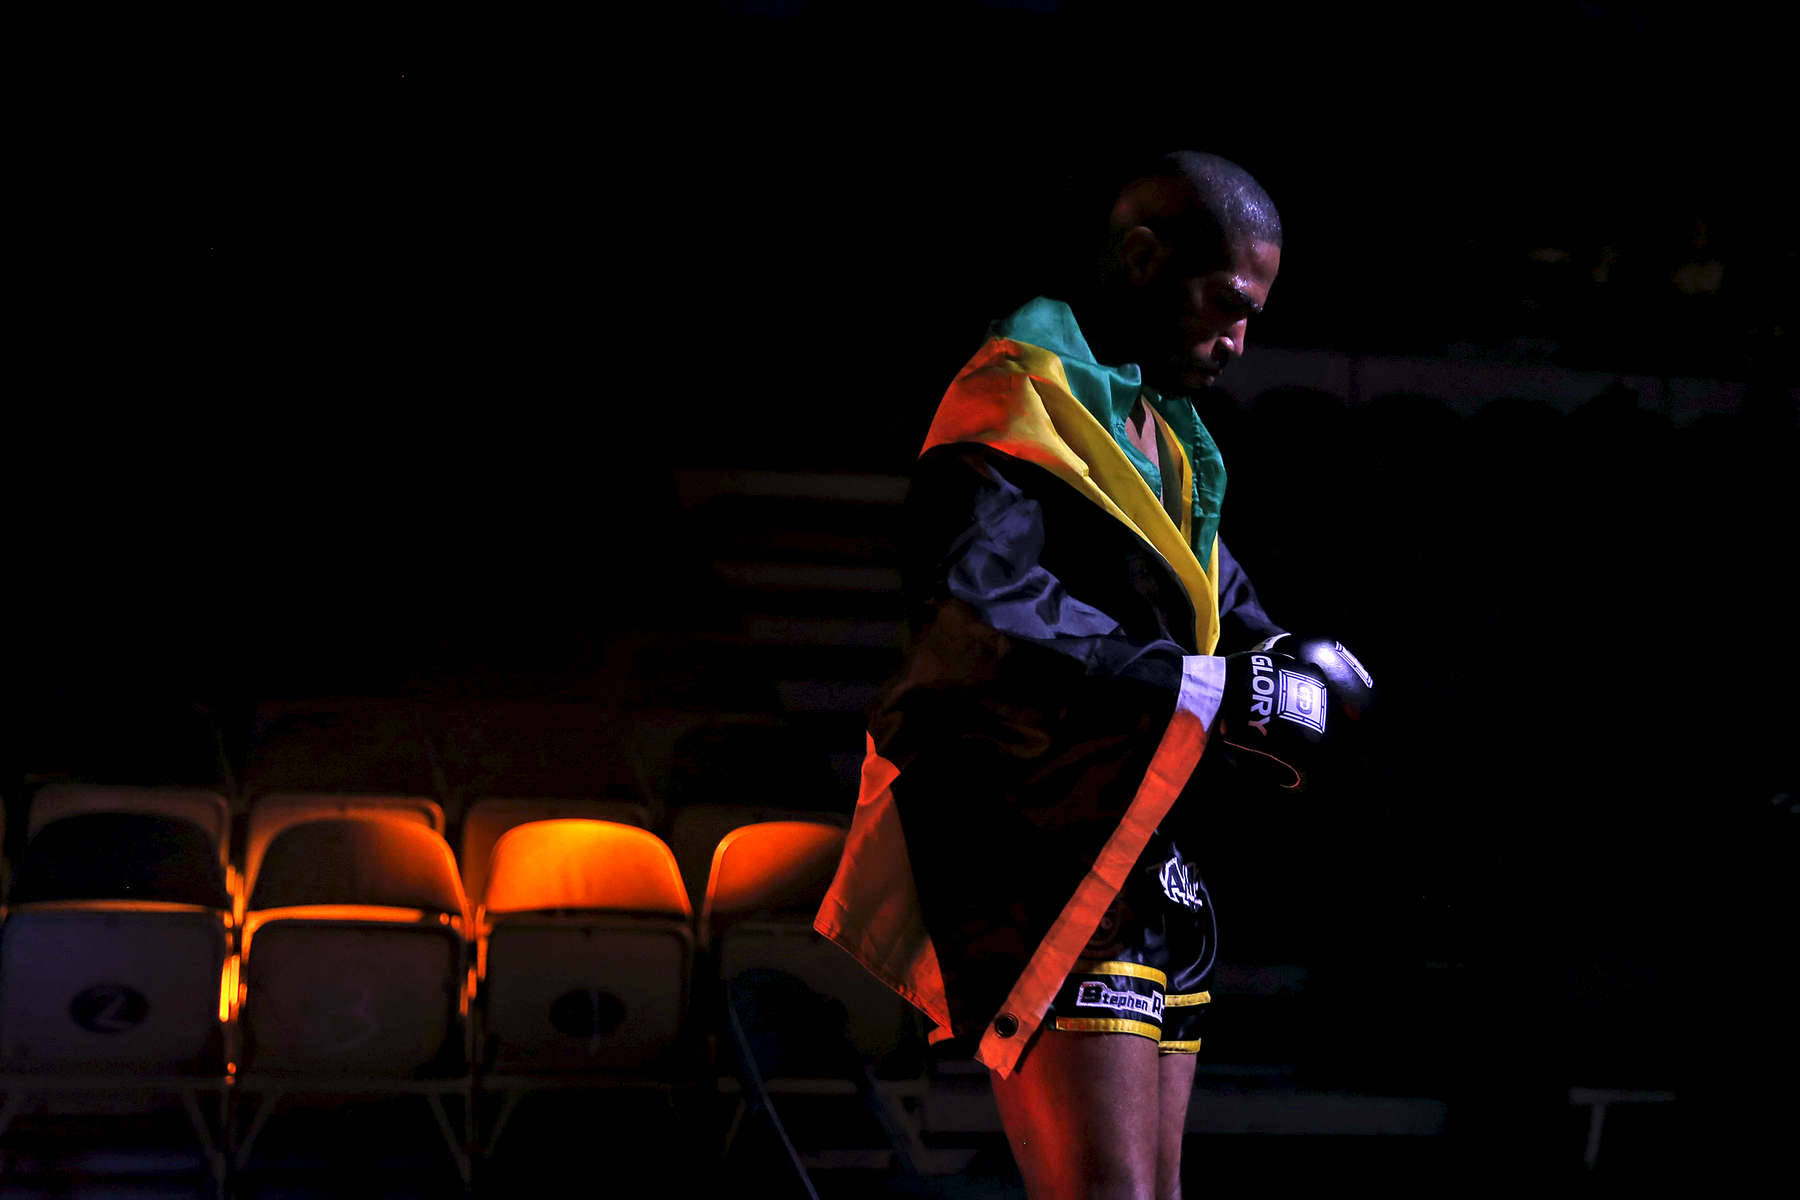 Stephen Richards waits to enter the ring before his match against Francois Ambang during Friday's SuperFight presented by Glory Sports International at the Hampton Coliseum.